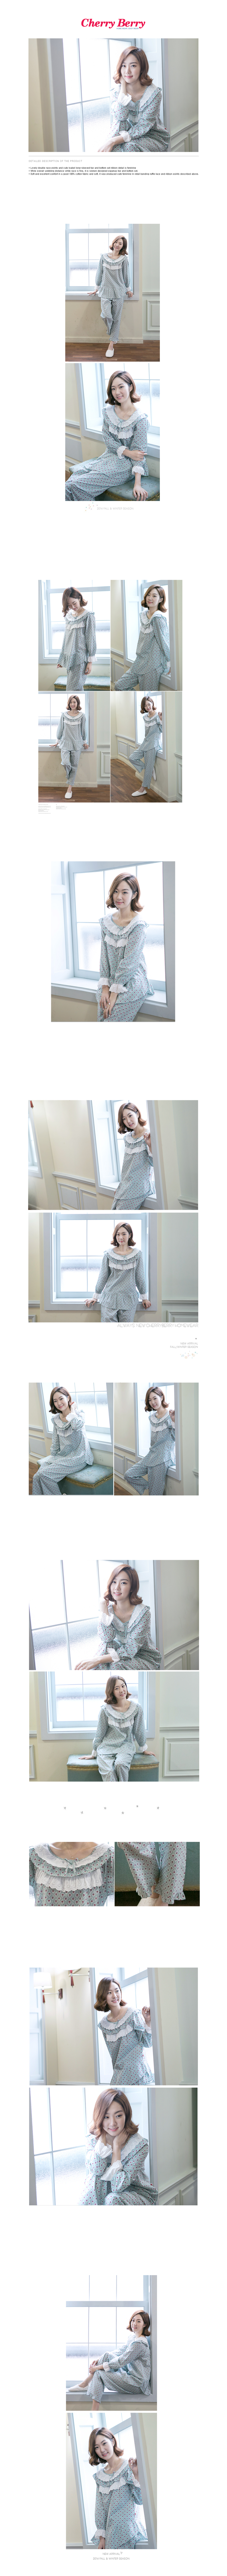 [Cherryberrymall] Woman isabel Long Sleeve Set down, Mint, Free Size